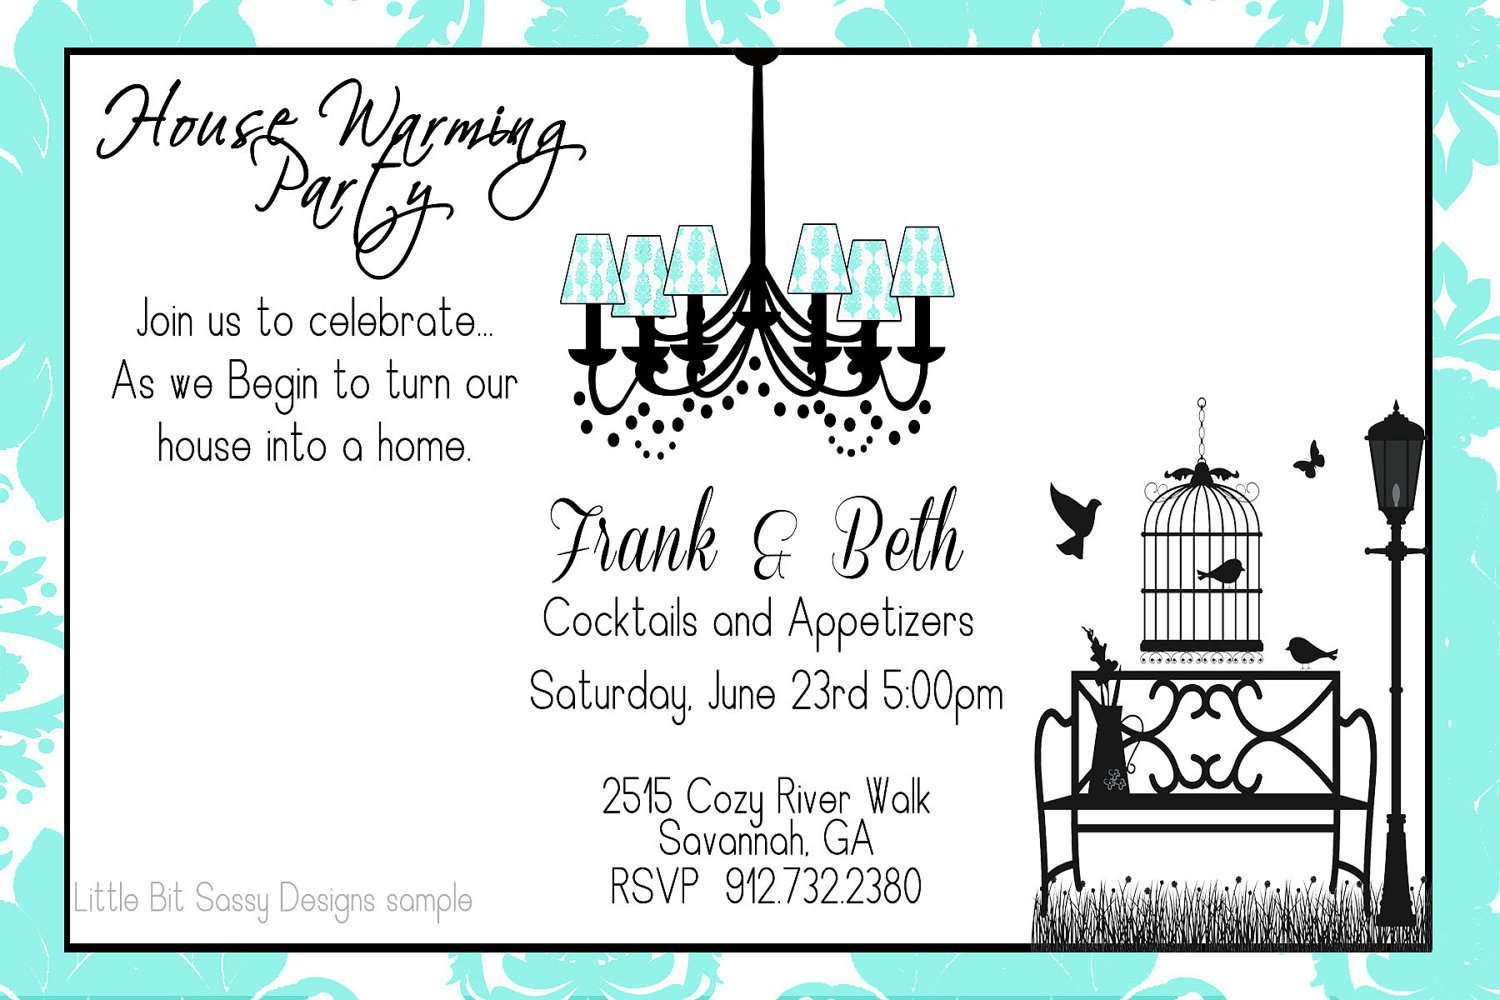 housewarming party invitation wording House Warming Invitation